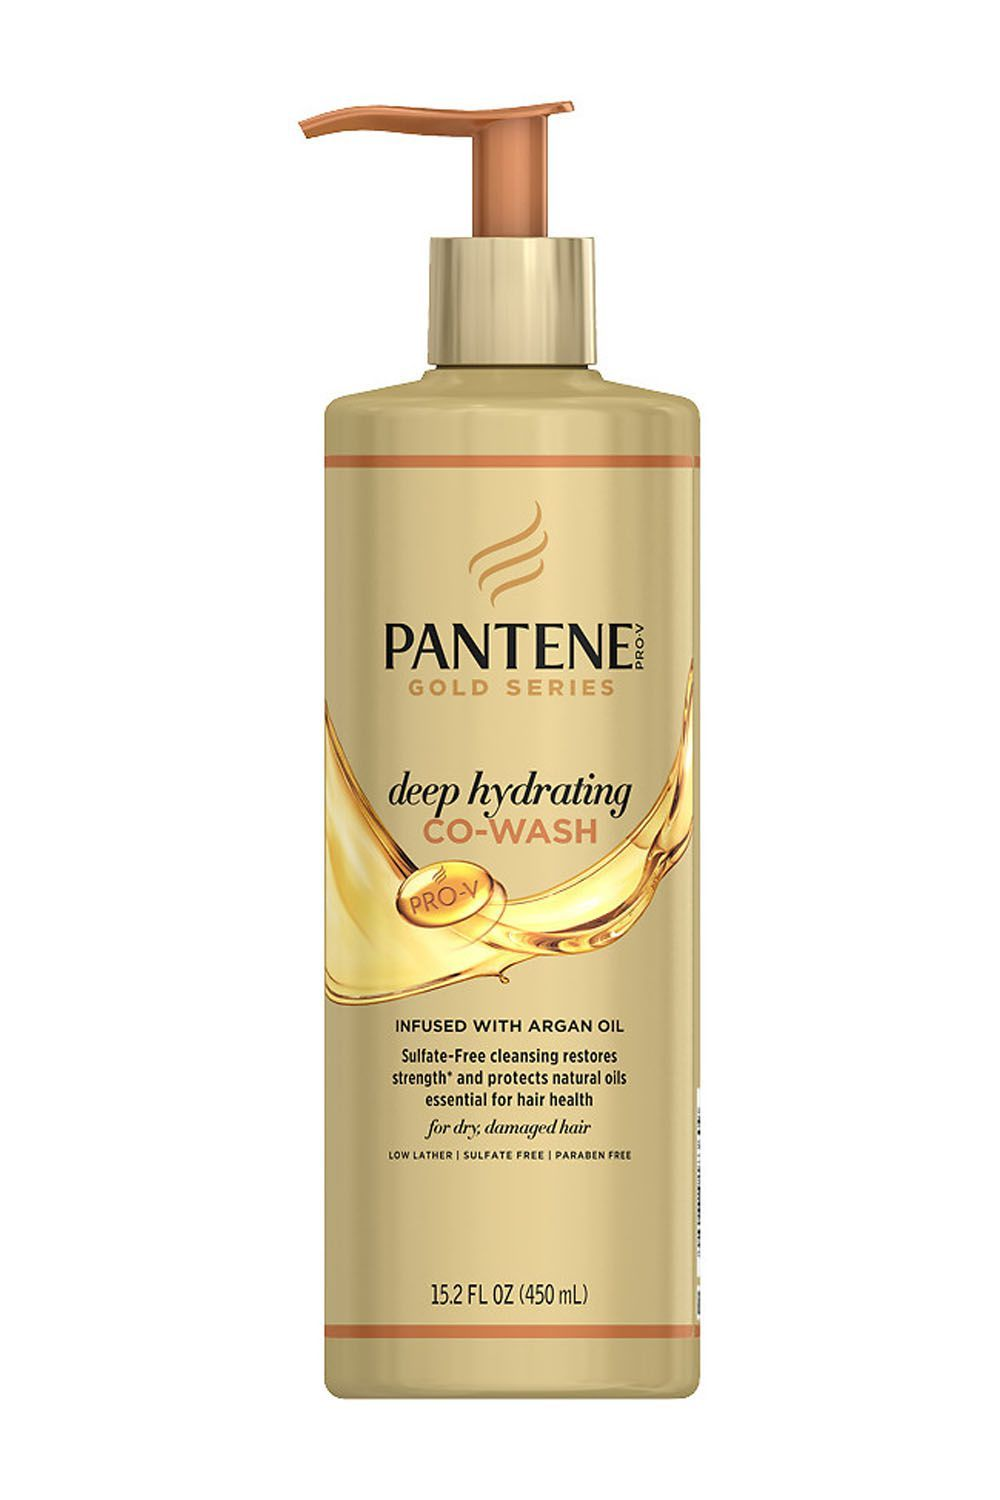 21 Best Curly Hair Products Of 2021 Best Curl Creams And Shampoos